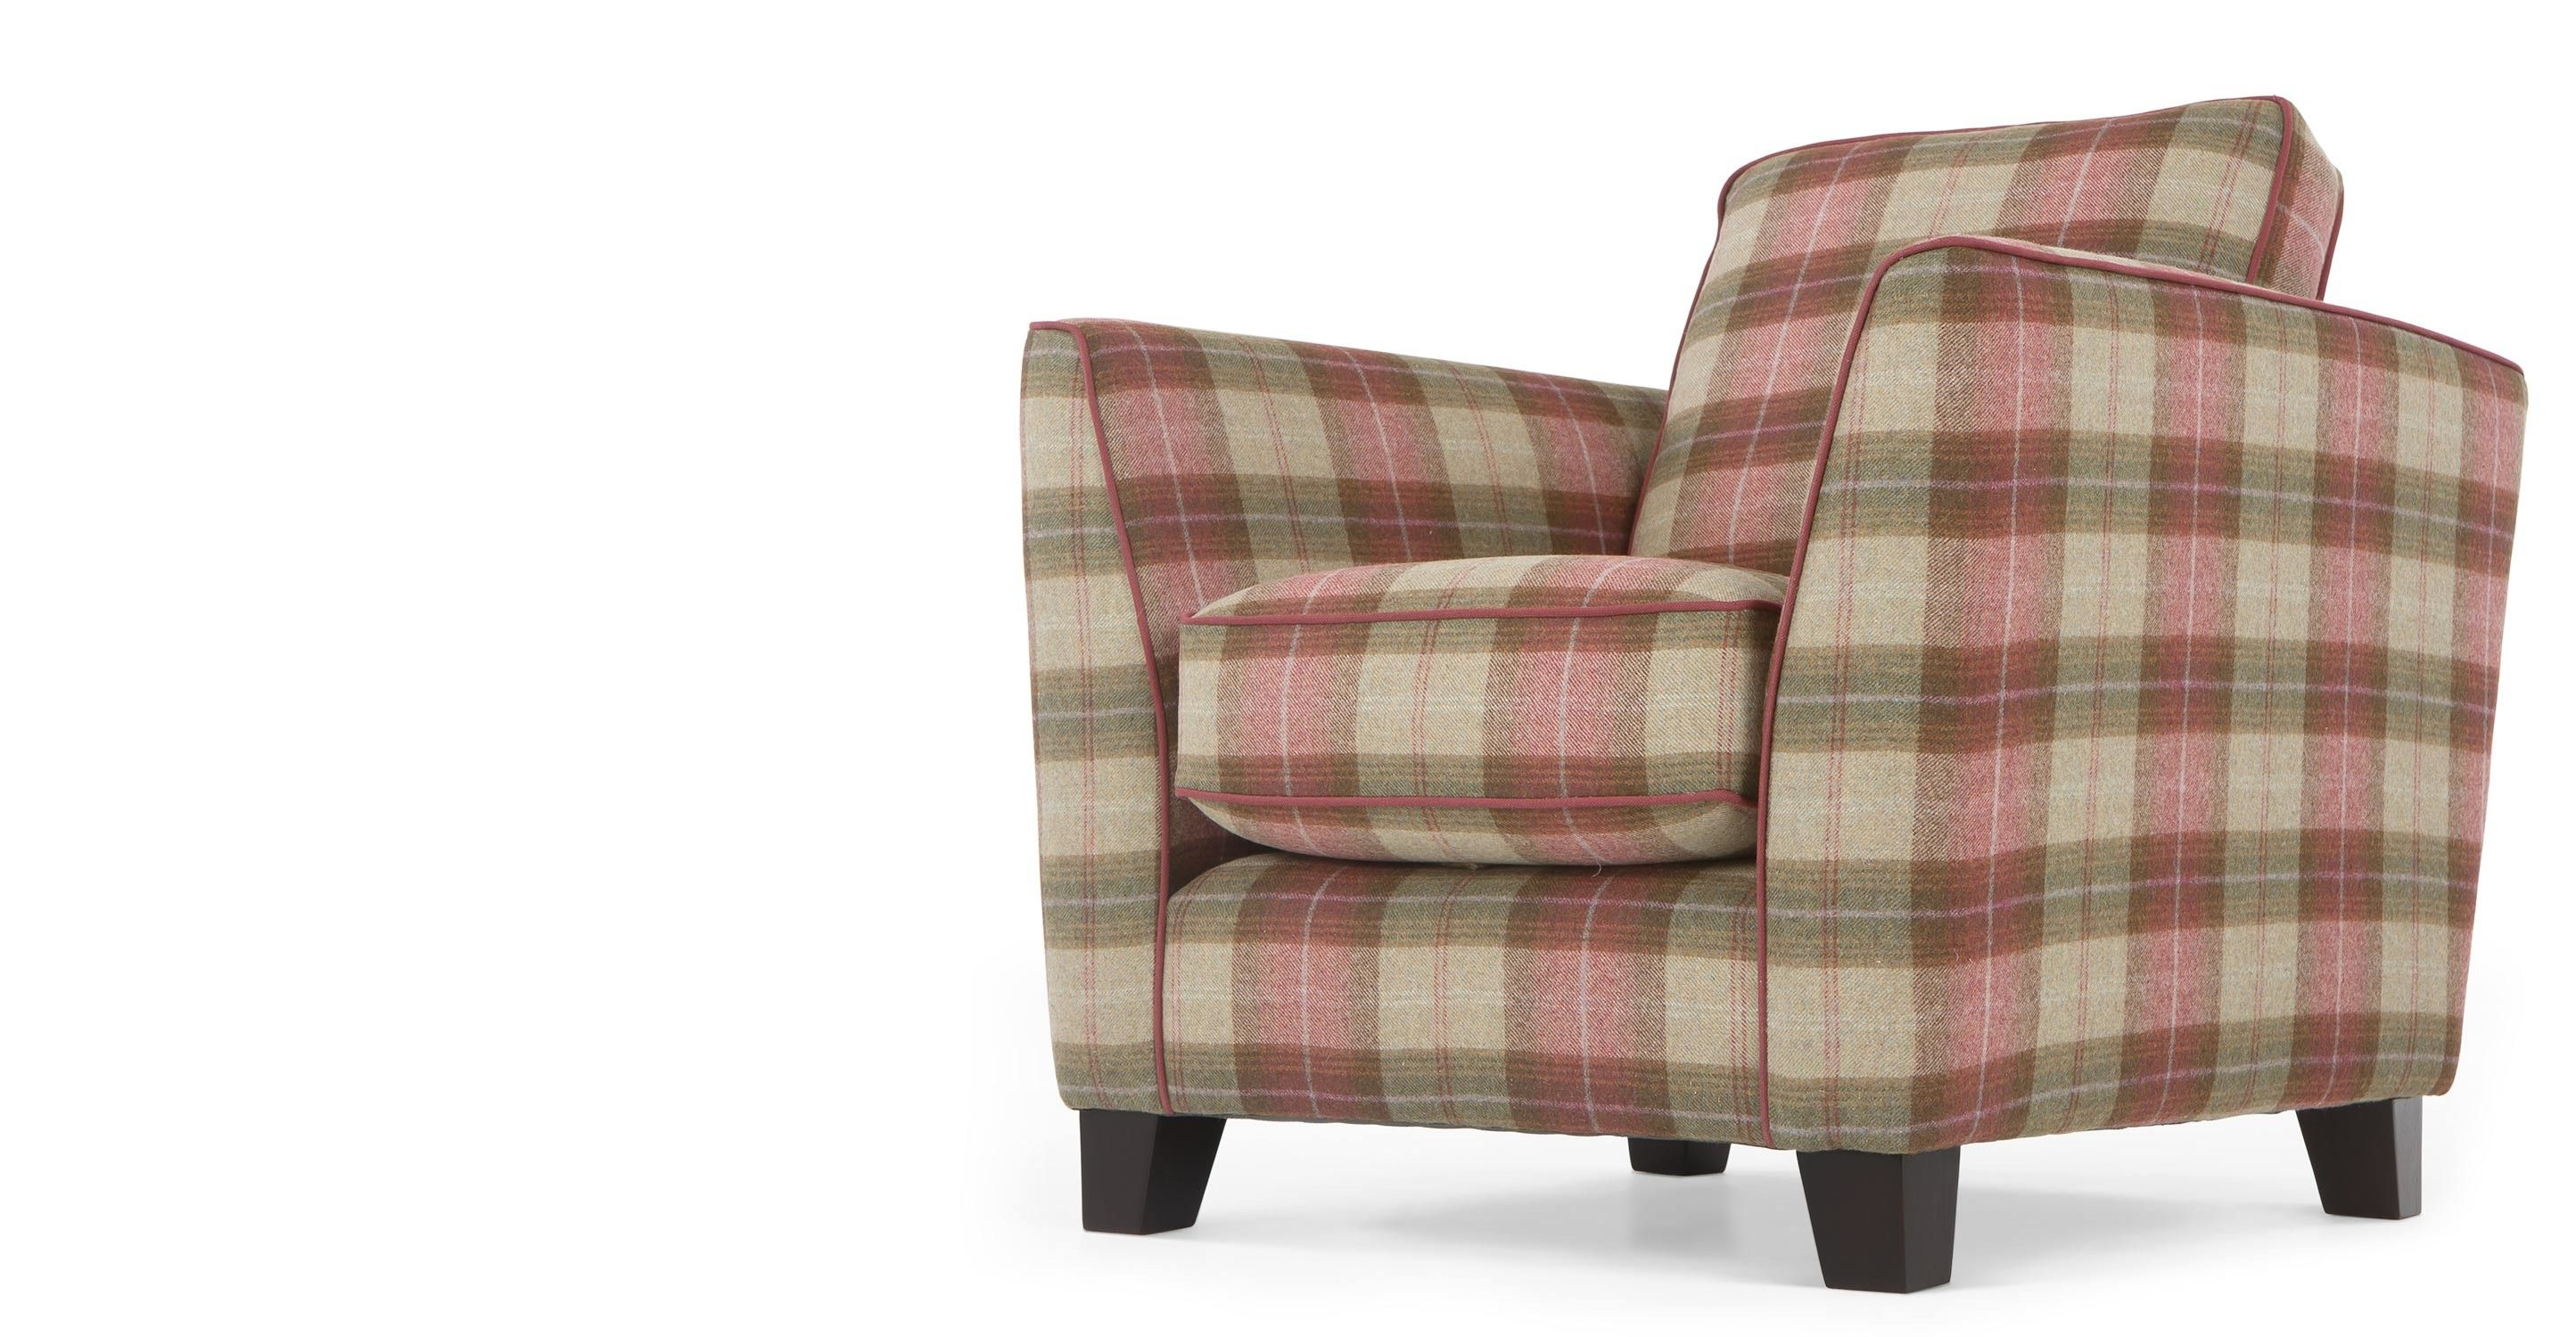 Plaid Beige Canapé Wolseley Armchair Beige Plaid Living Room Pinterest Beige